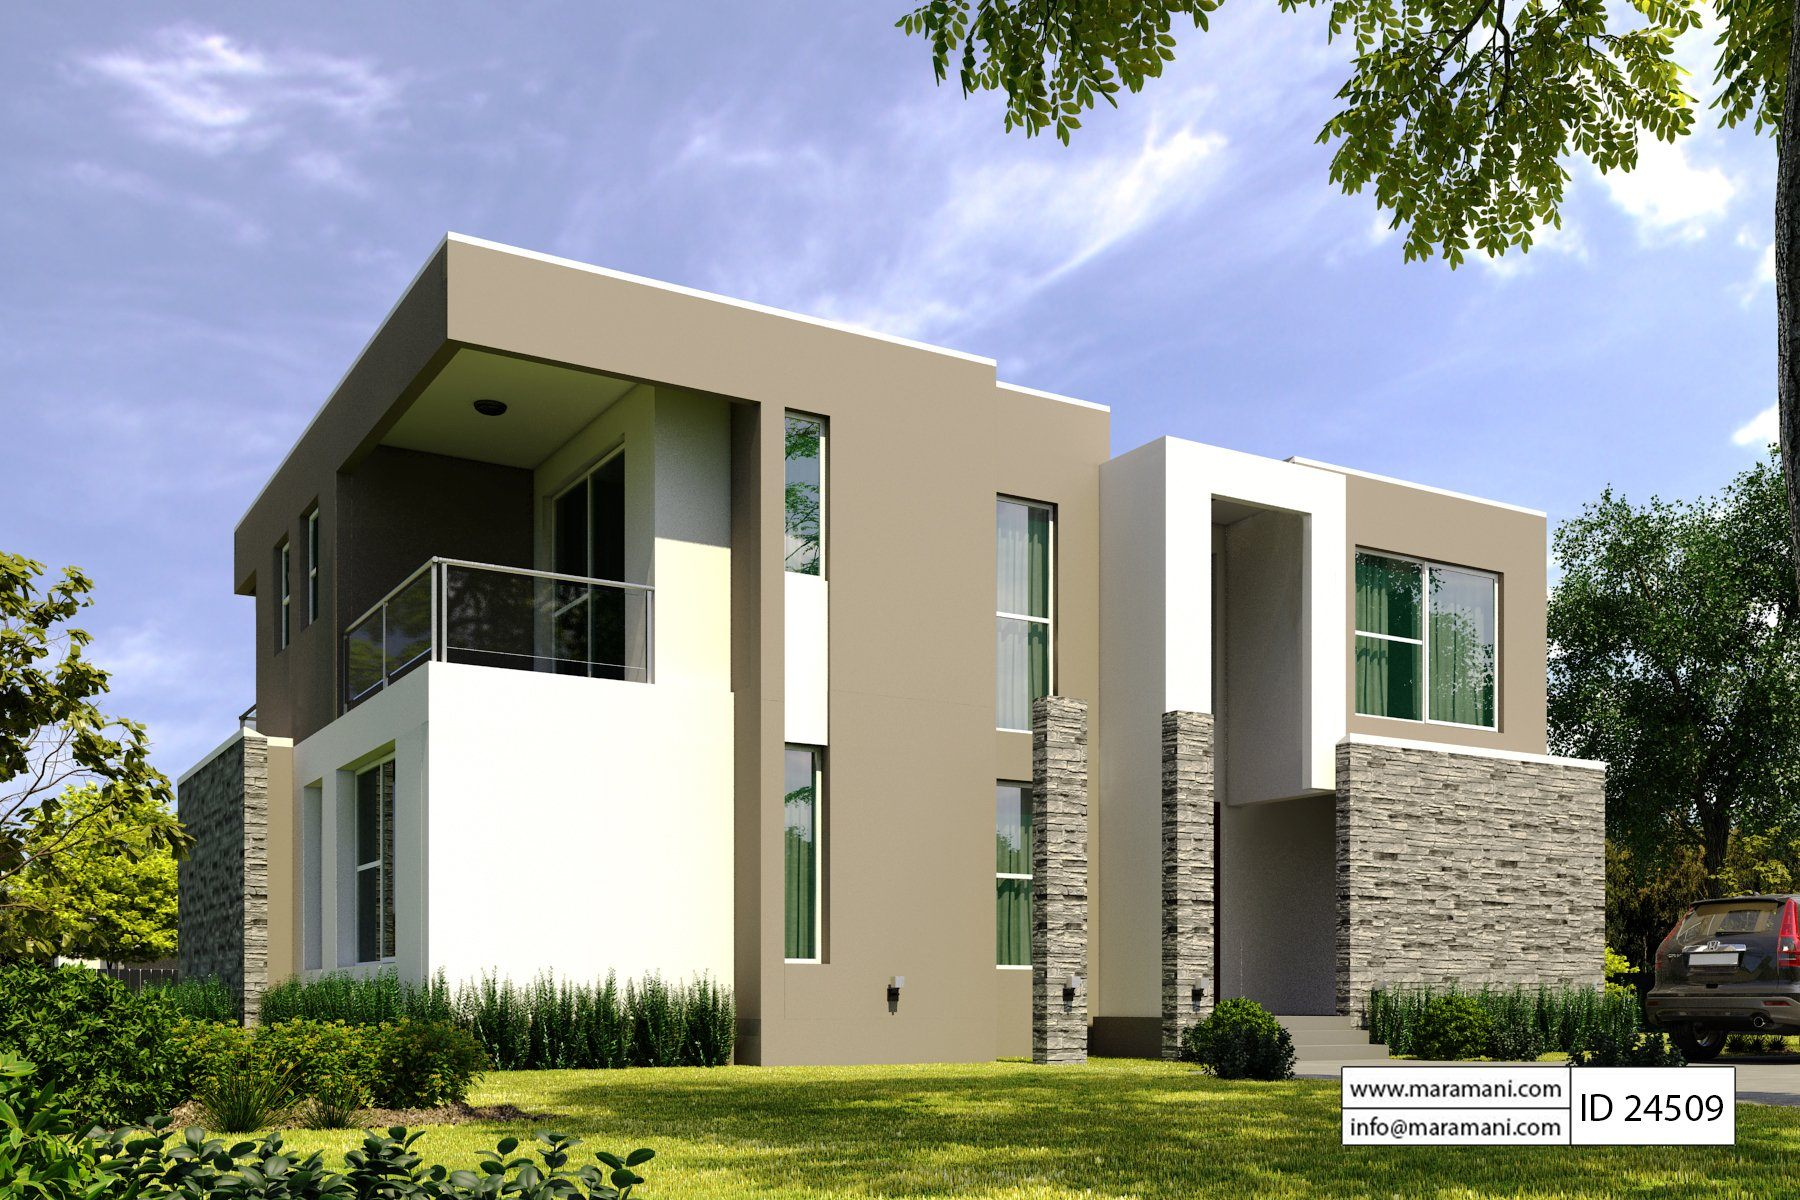 modern 4 bedroom house design id 24509 home plans by 16216 | view 02a v 1533037962